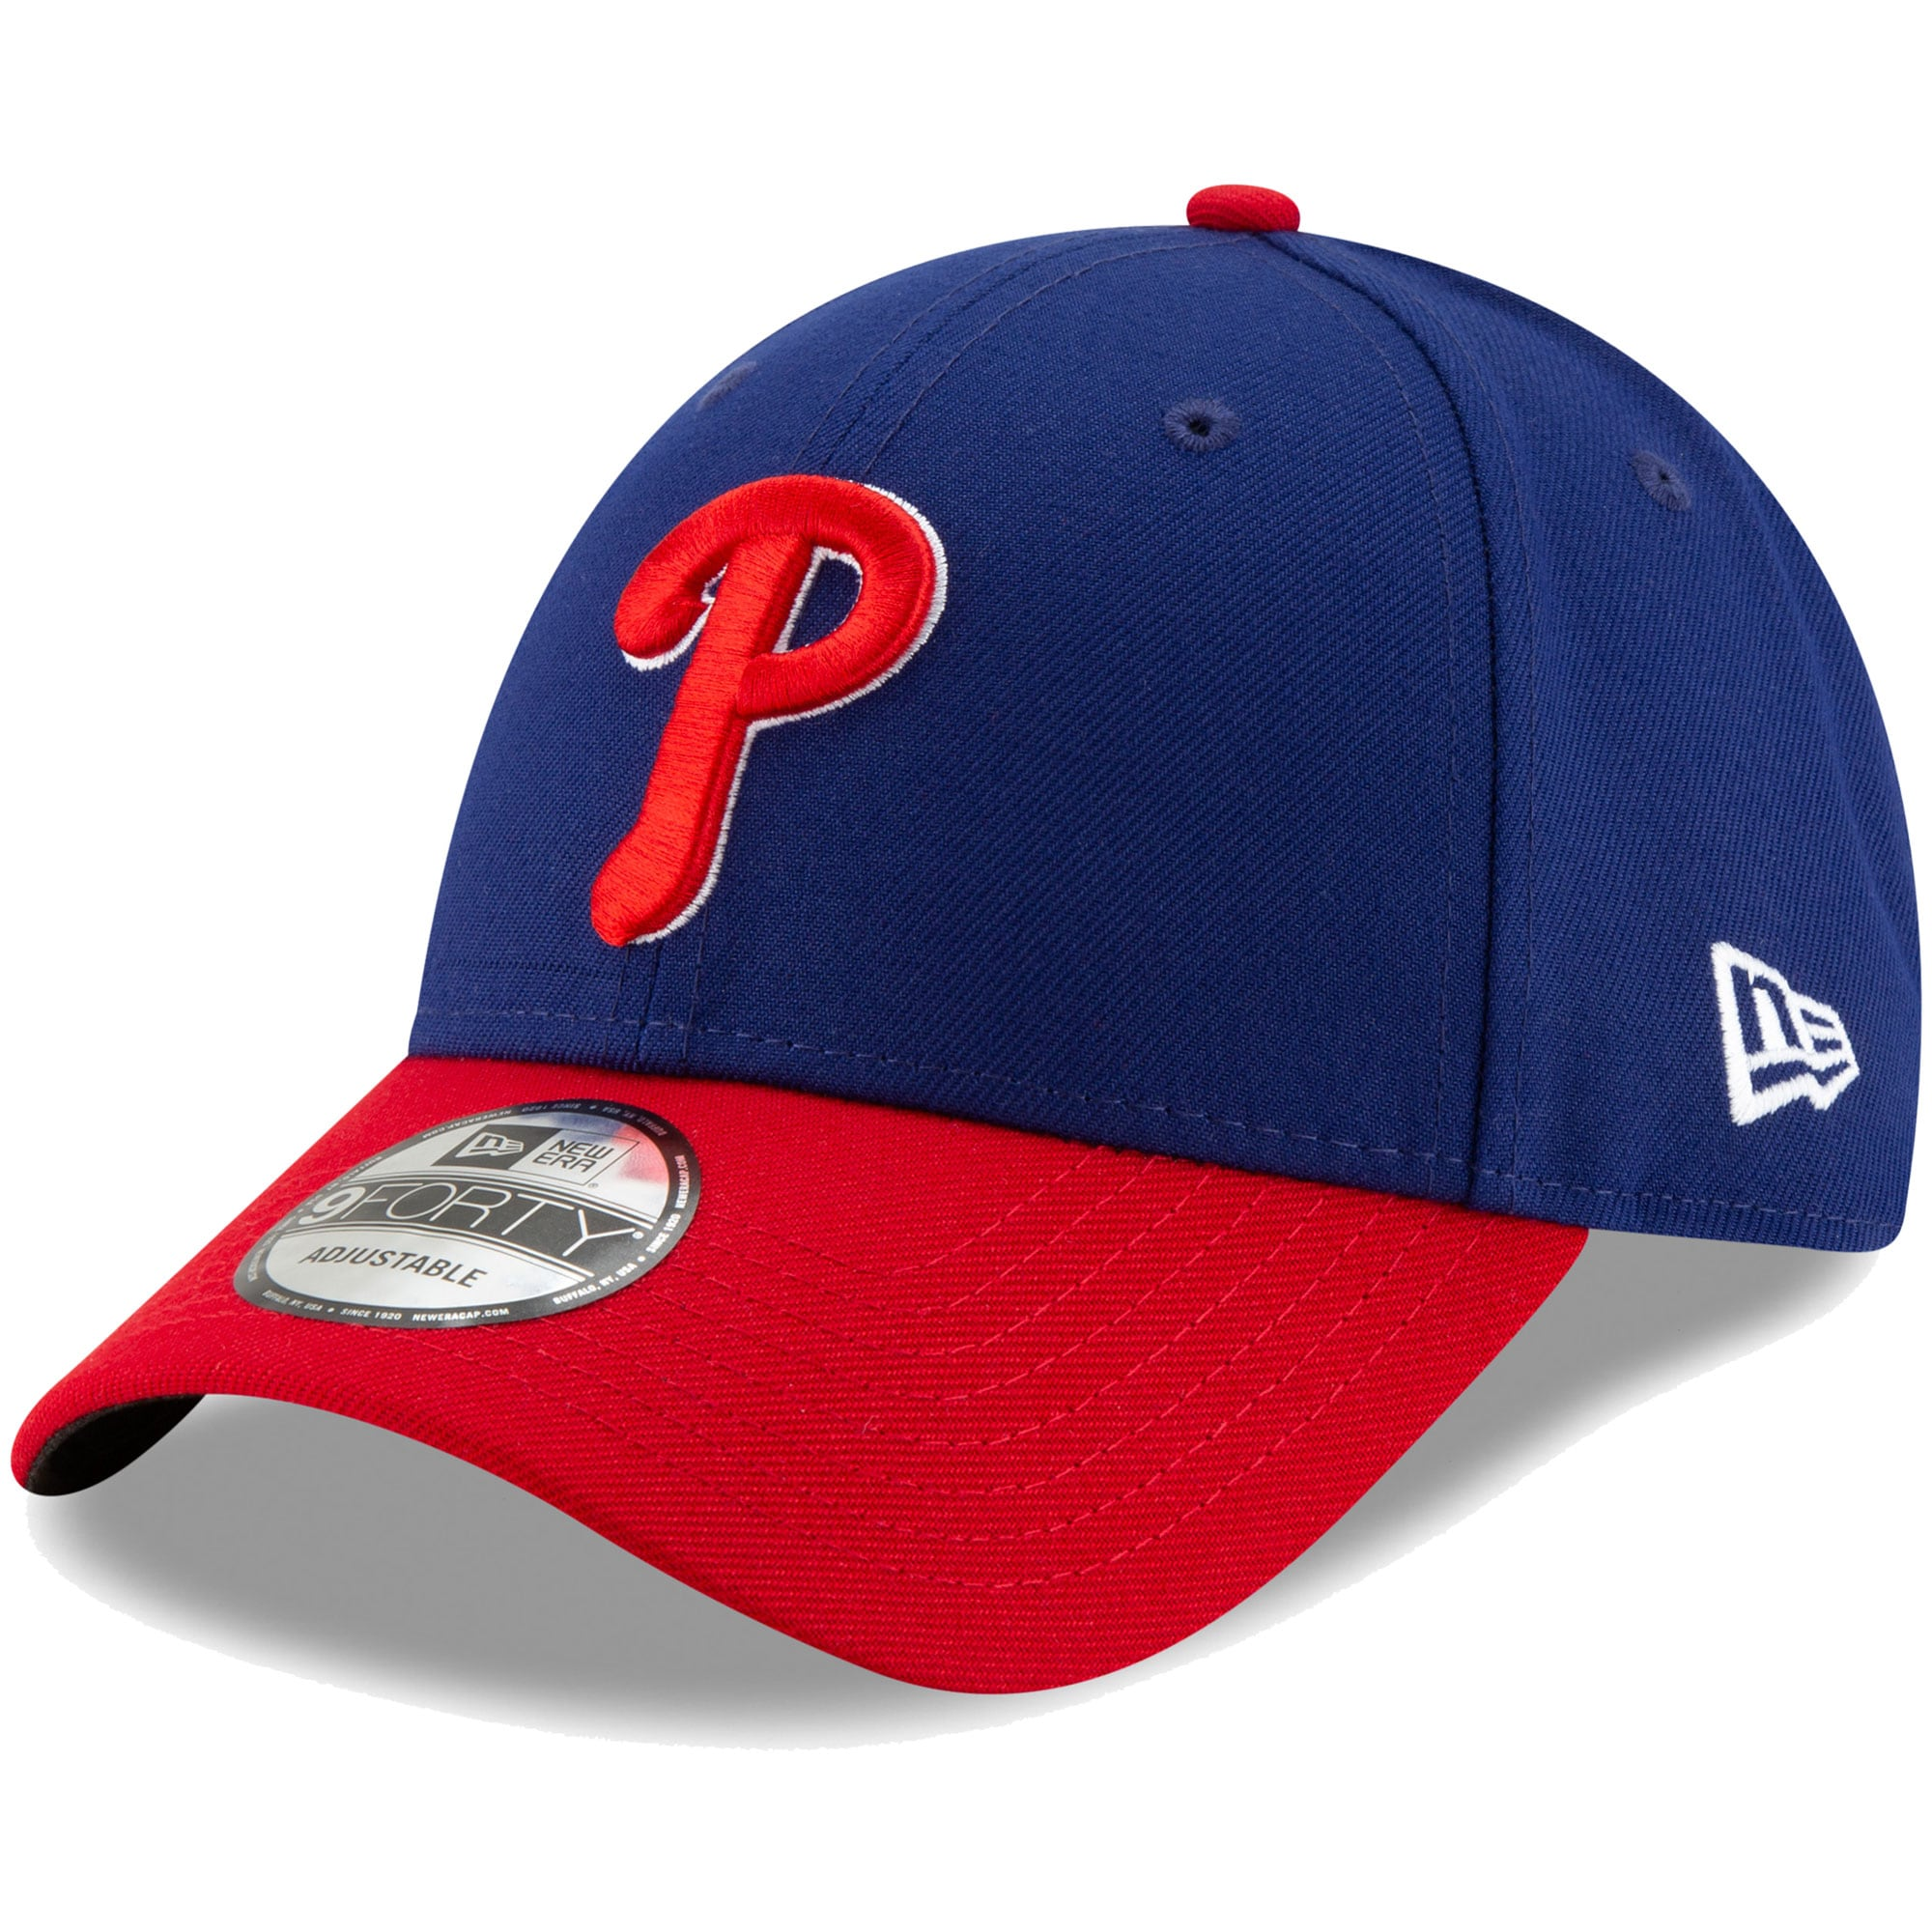 Philadelphia Phillies New Era Alternate The League 9FORTY Adjustable Hat - Royal/Red